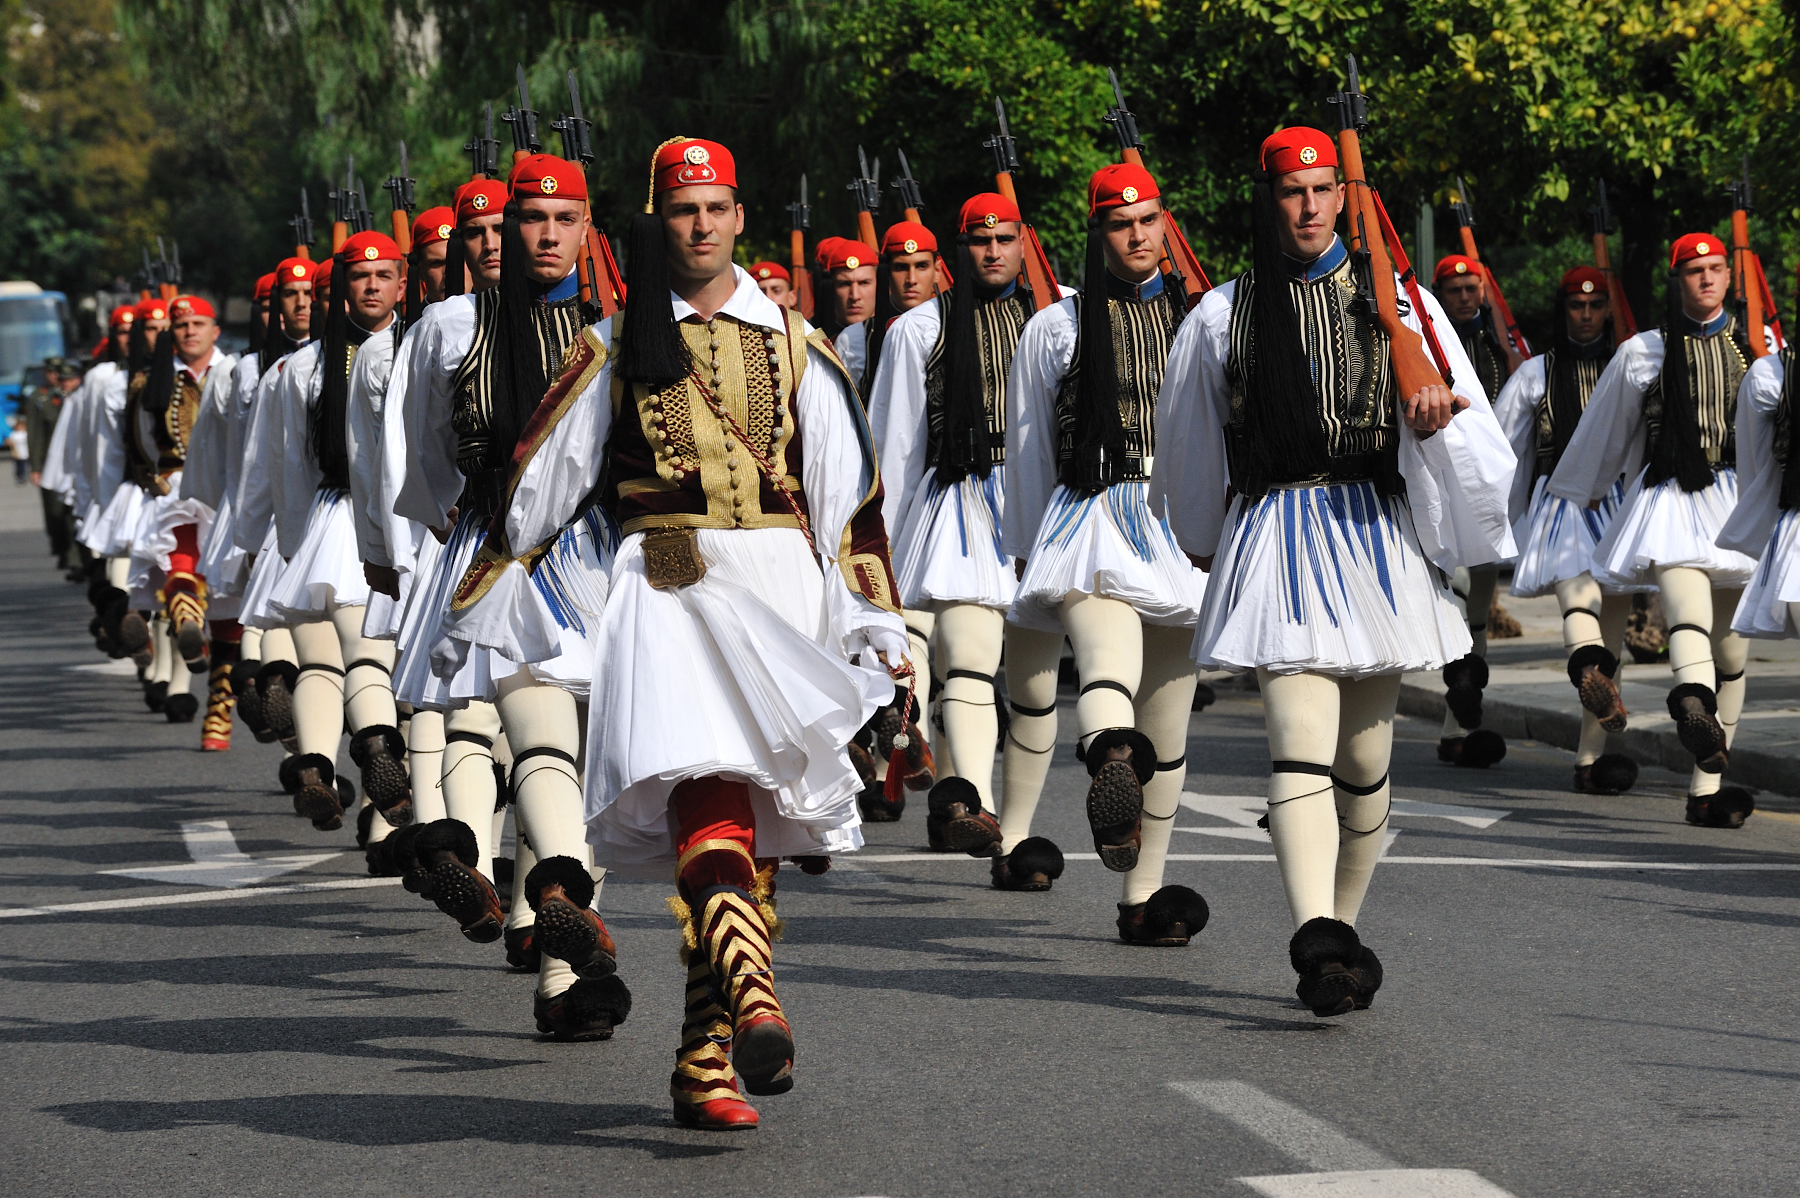 The official welcome was held at the Presidential Palace, which is the official residence of the president of the Hellenic Republic. It previously served as the Royal Palace until the abolition of the monarchy by referendum in 1974.